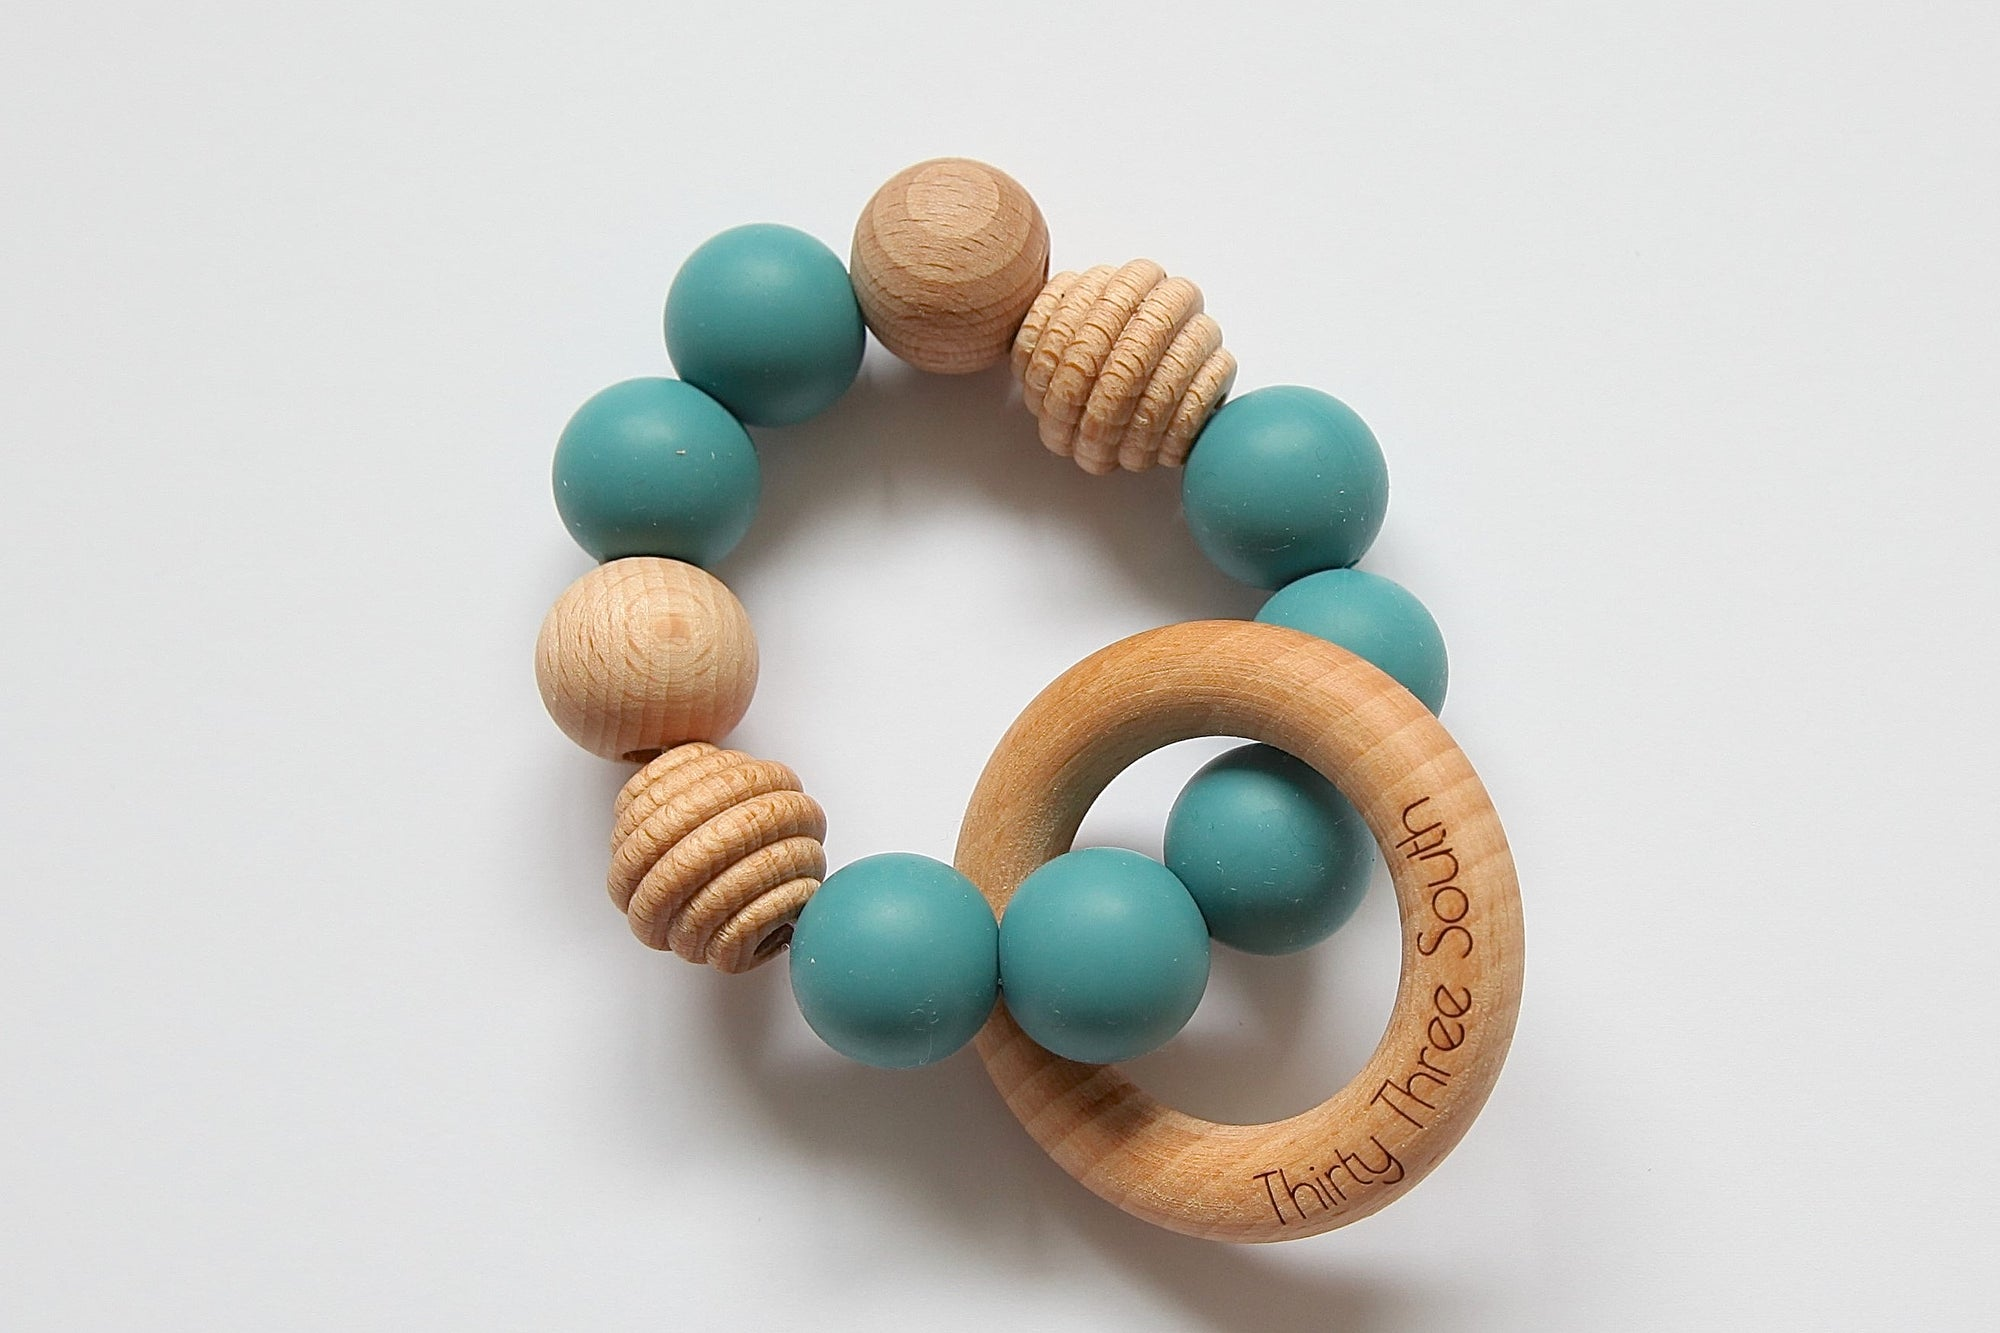 Thirty Three South Wooden Teethers Positano Teal